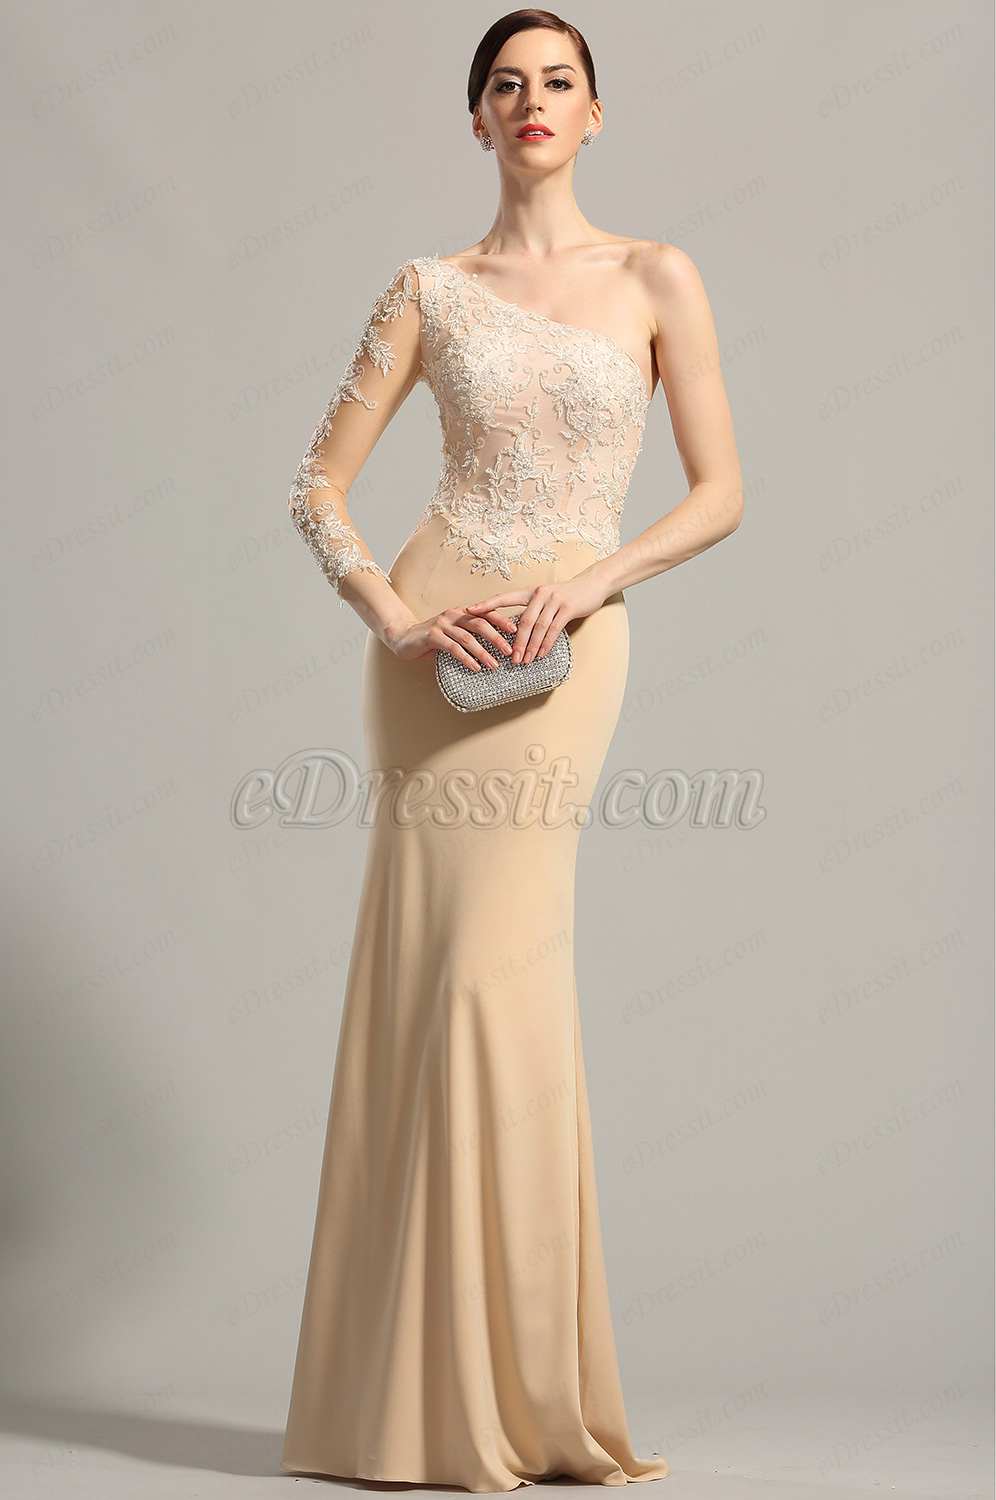 Edressit long lace sleeve formal party evening dress